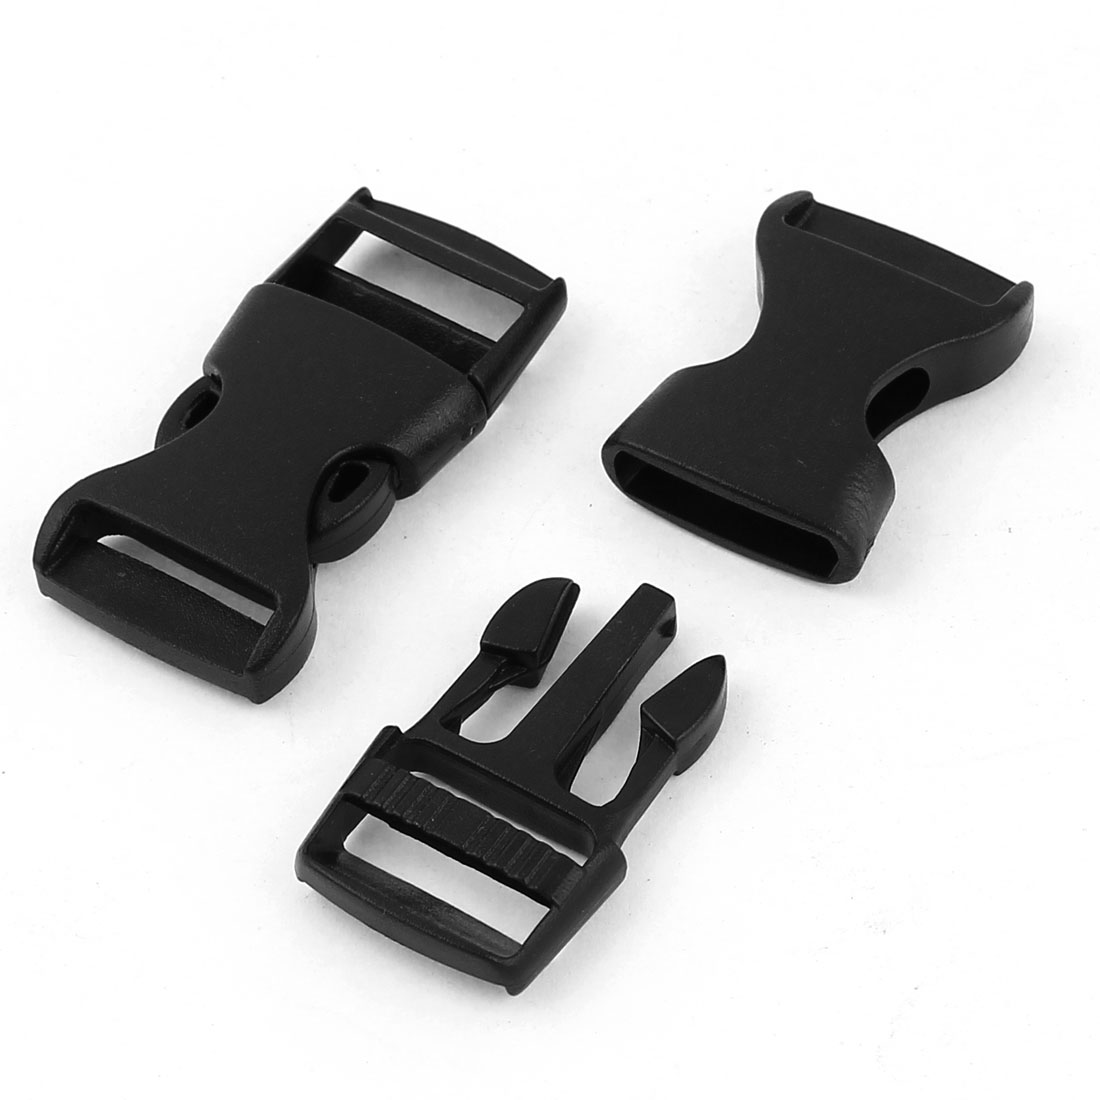 2 Pcs 1.5cm Belt Wide Luggage Safety Quick Release Buckles Black